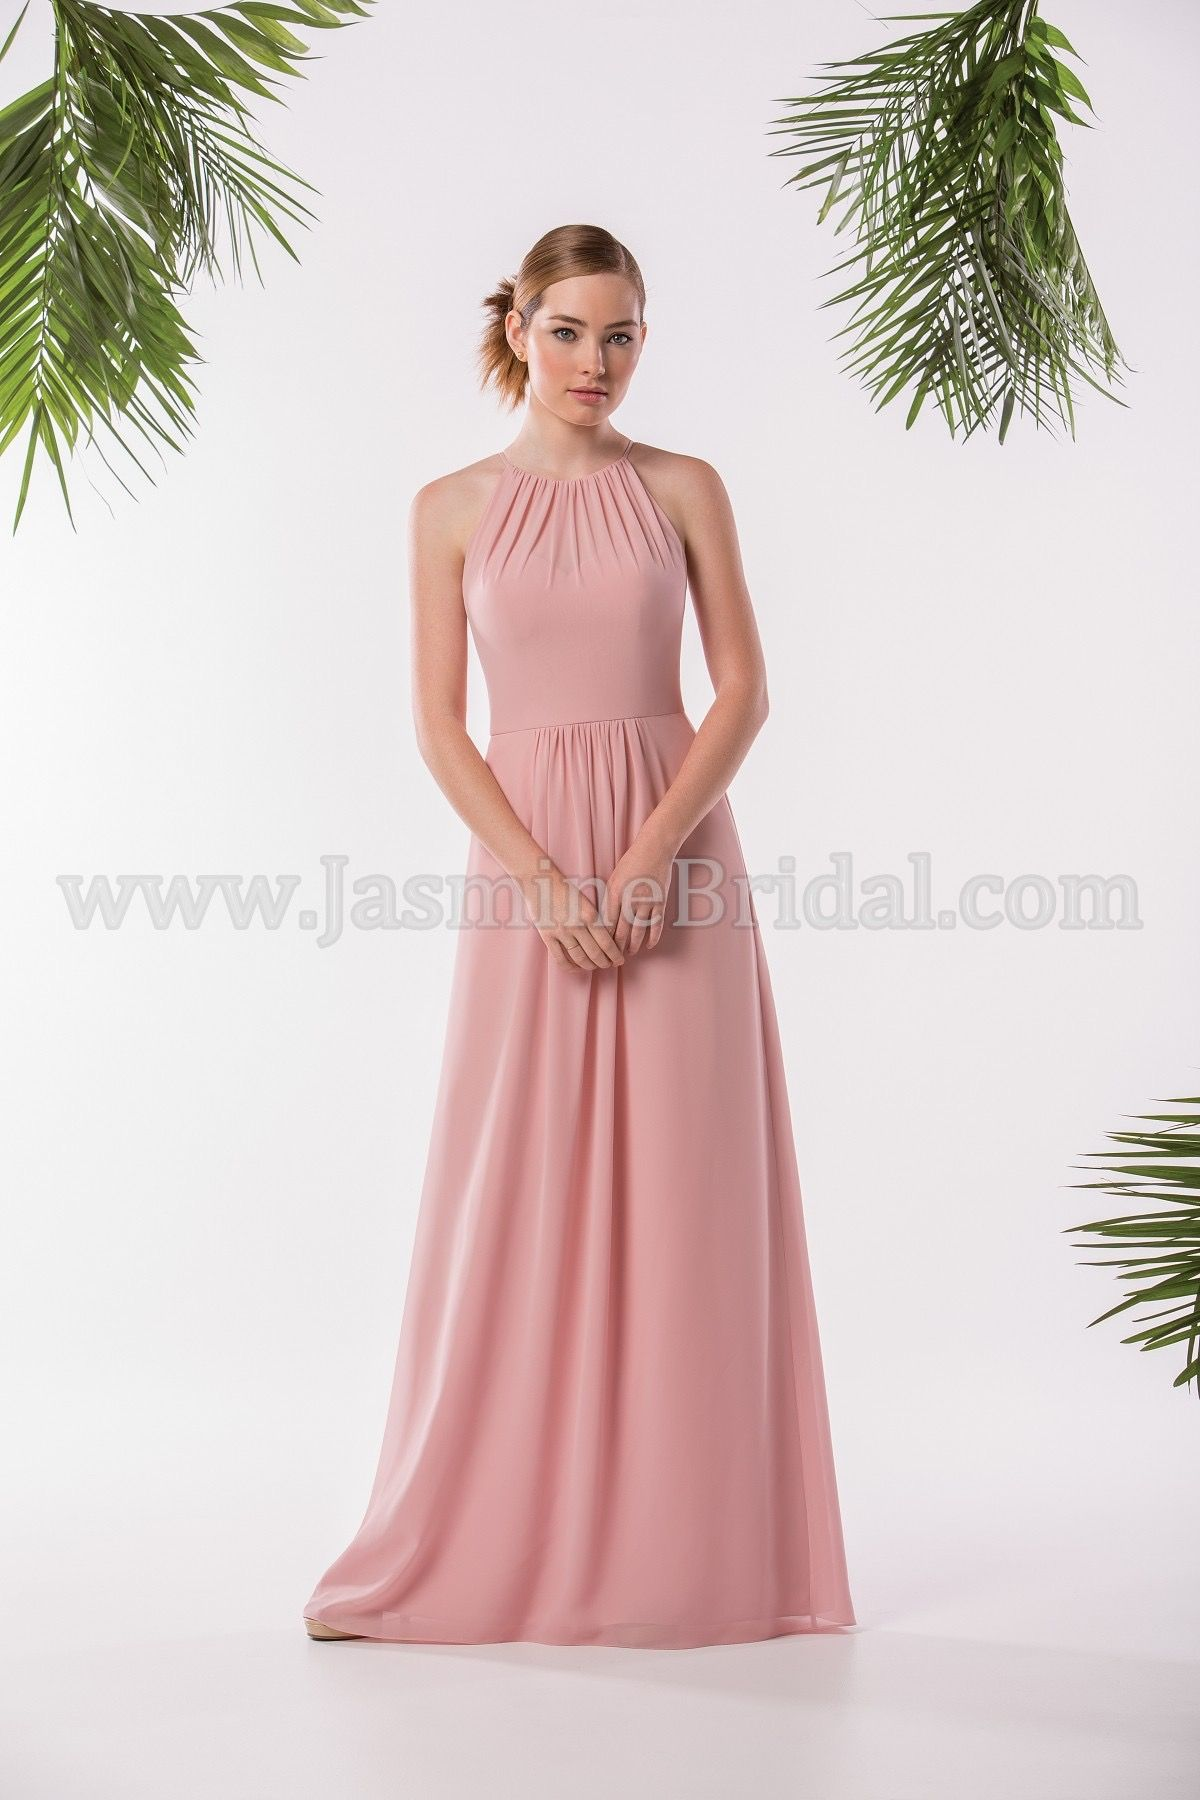 97411eb724 Where To Buy Bridesmaid Dresses Off The Rack - Gomes Weine AG